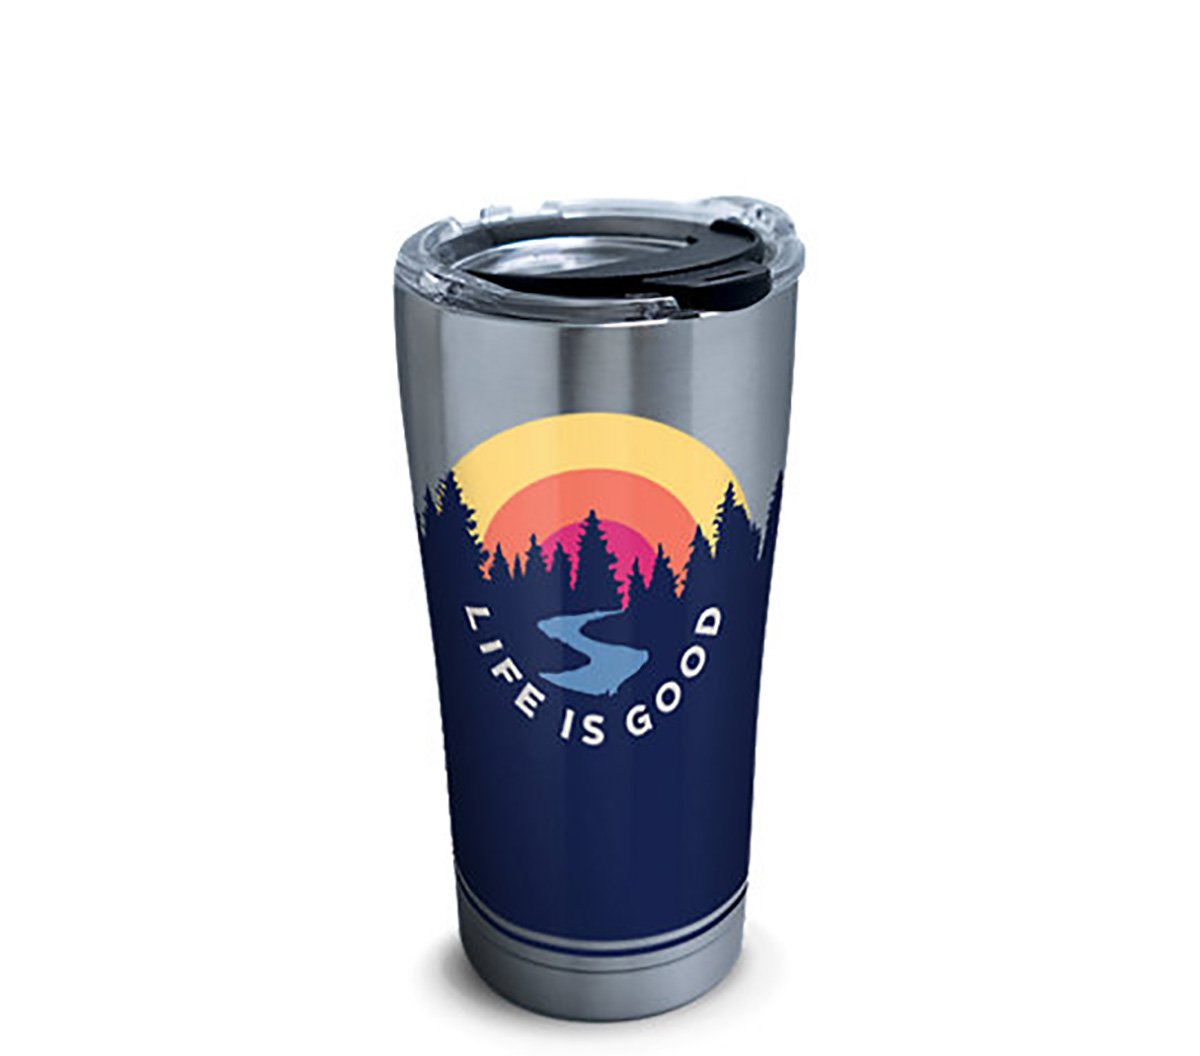 Tervis 1302578 Life is Good - Outdoor Scene Stainless Steel Insulated Tumbler, 20 oz, Silver